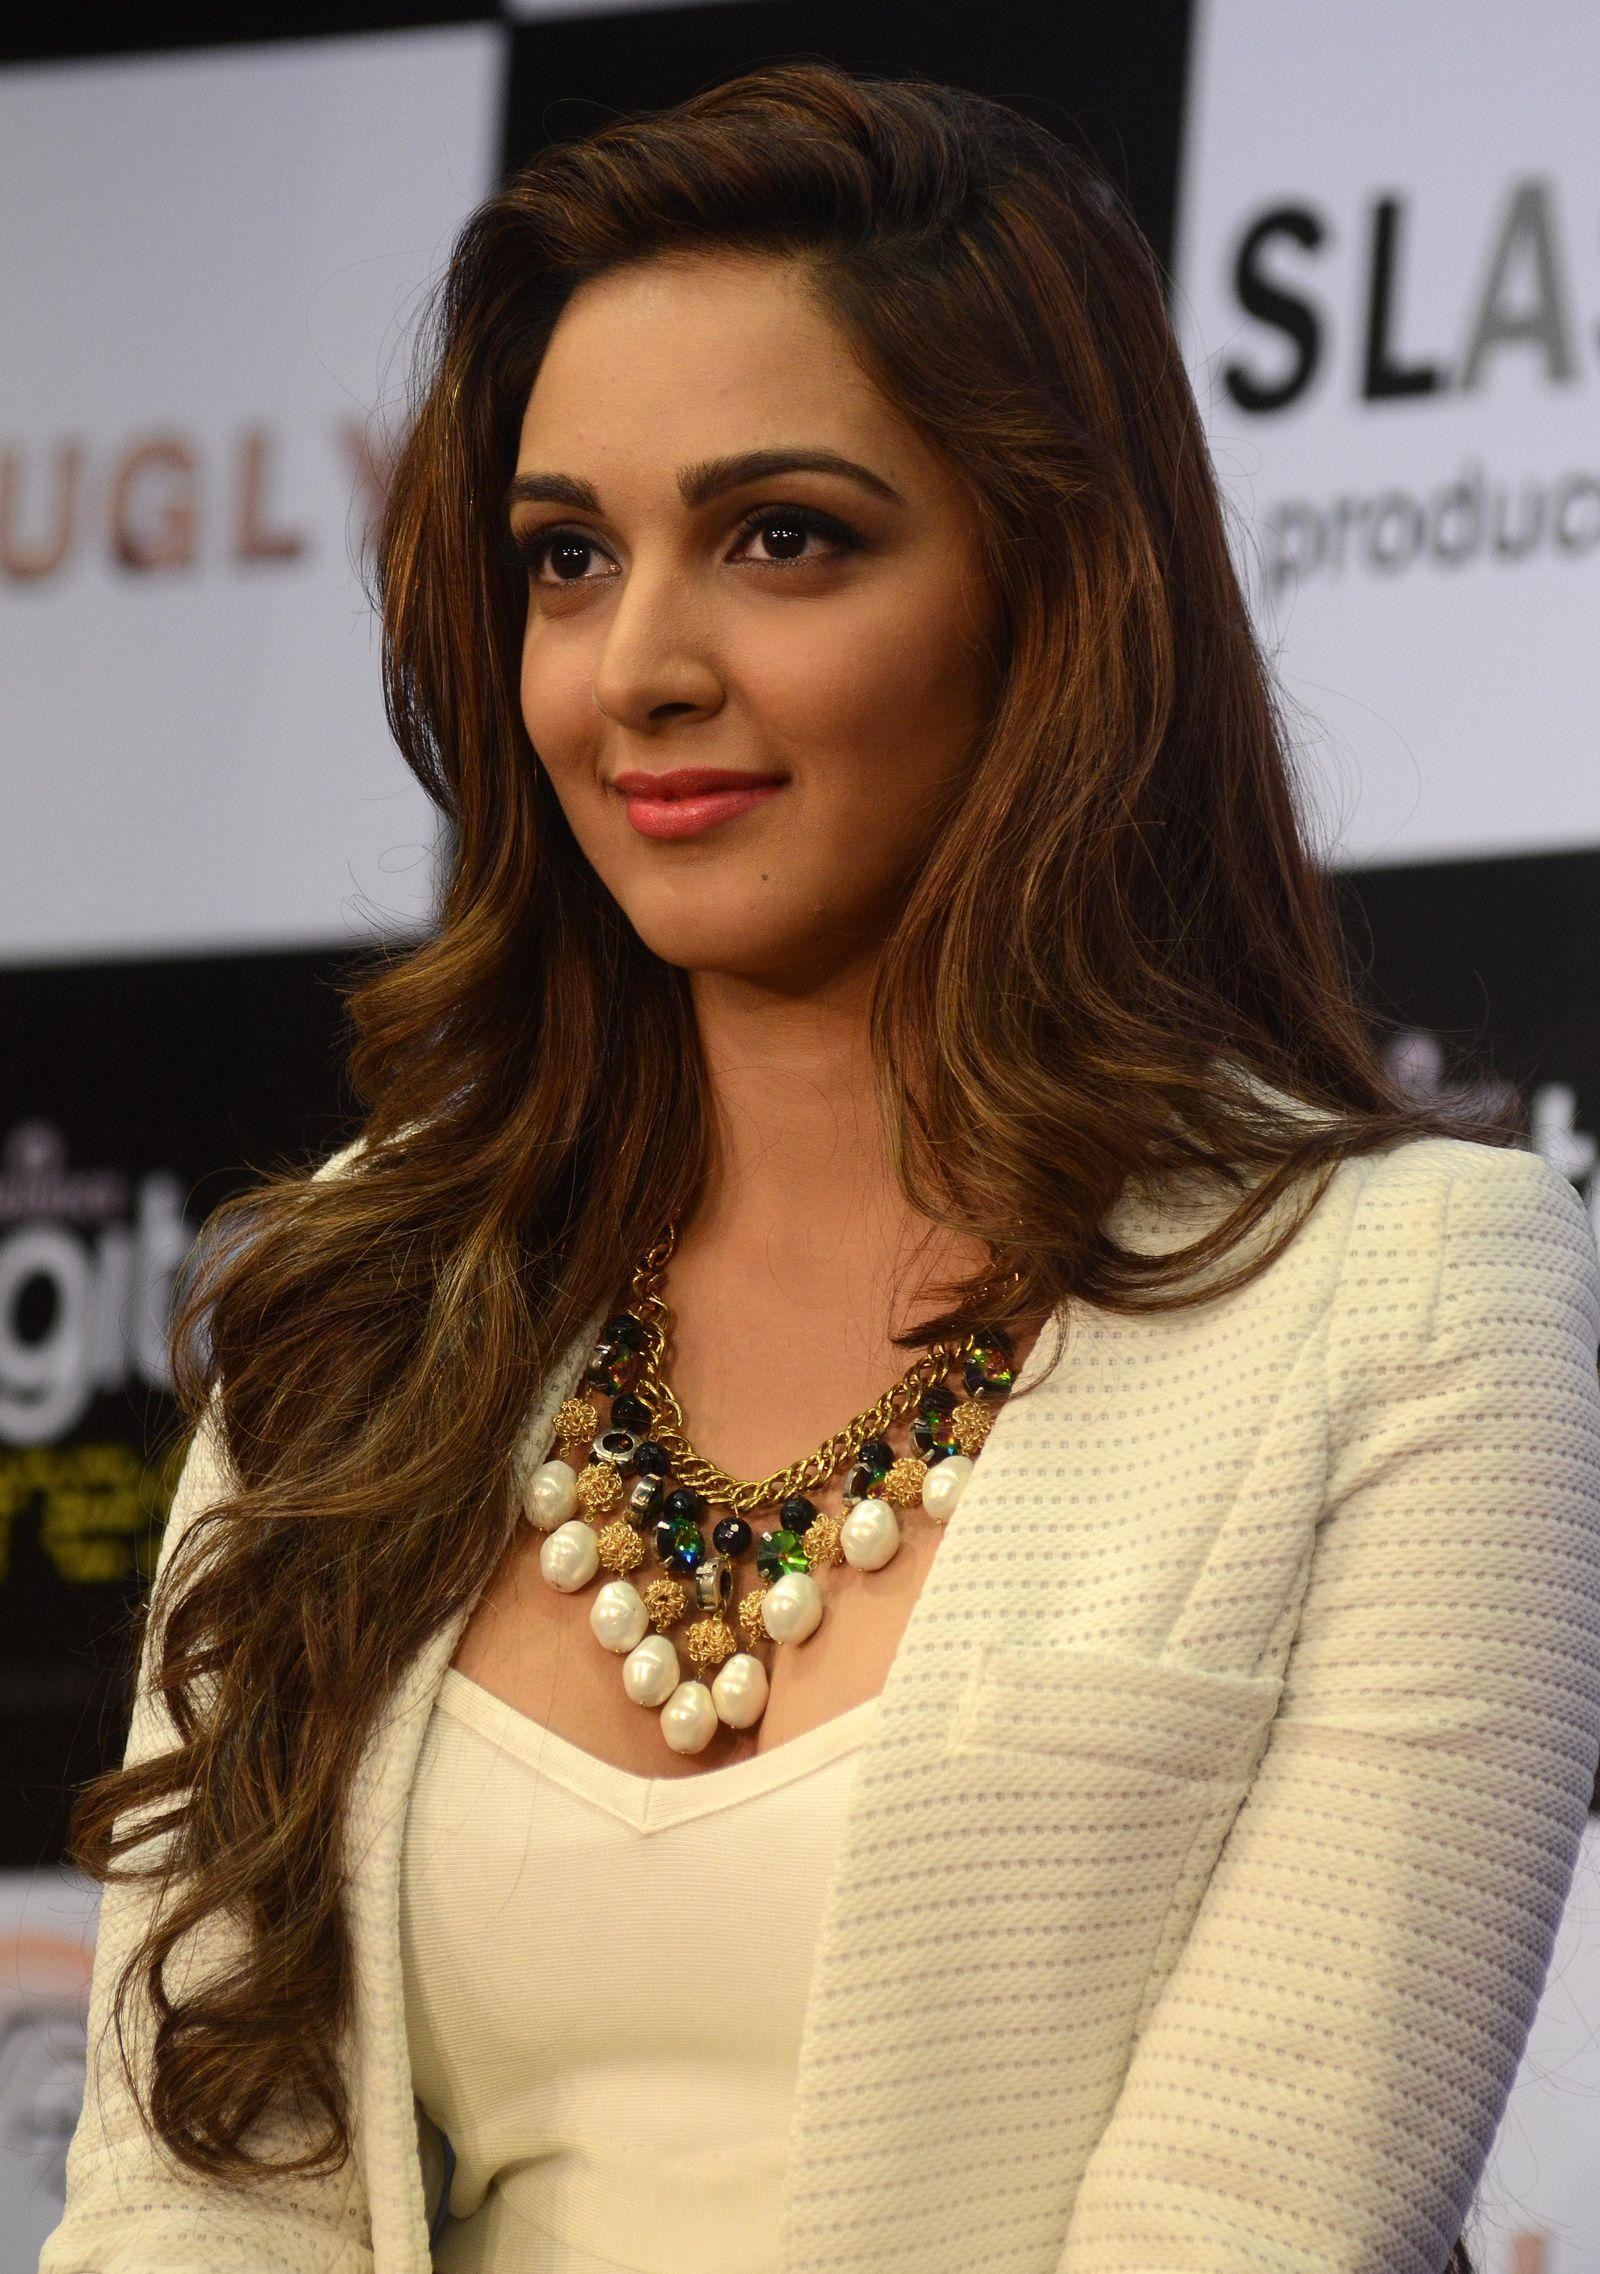 Kiara Advani hot photos